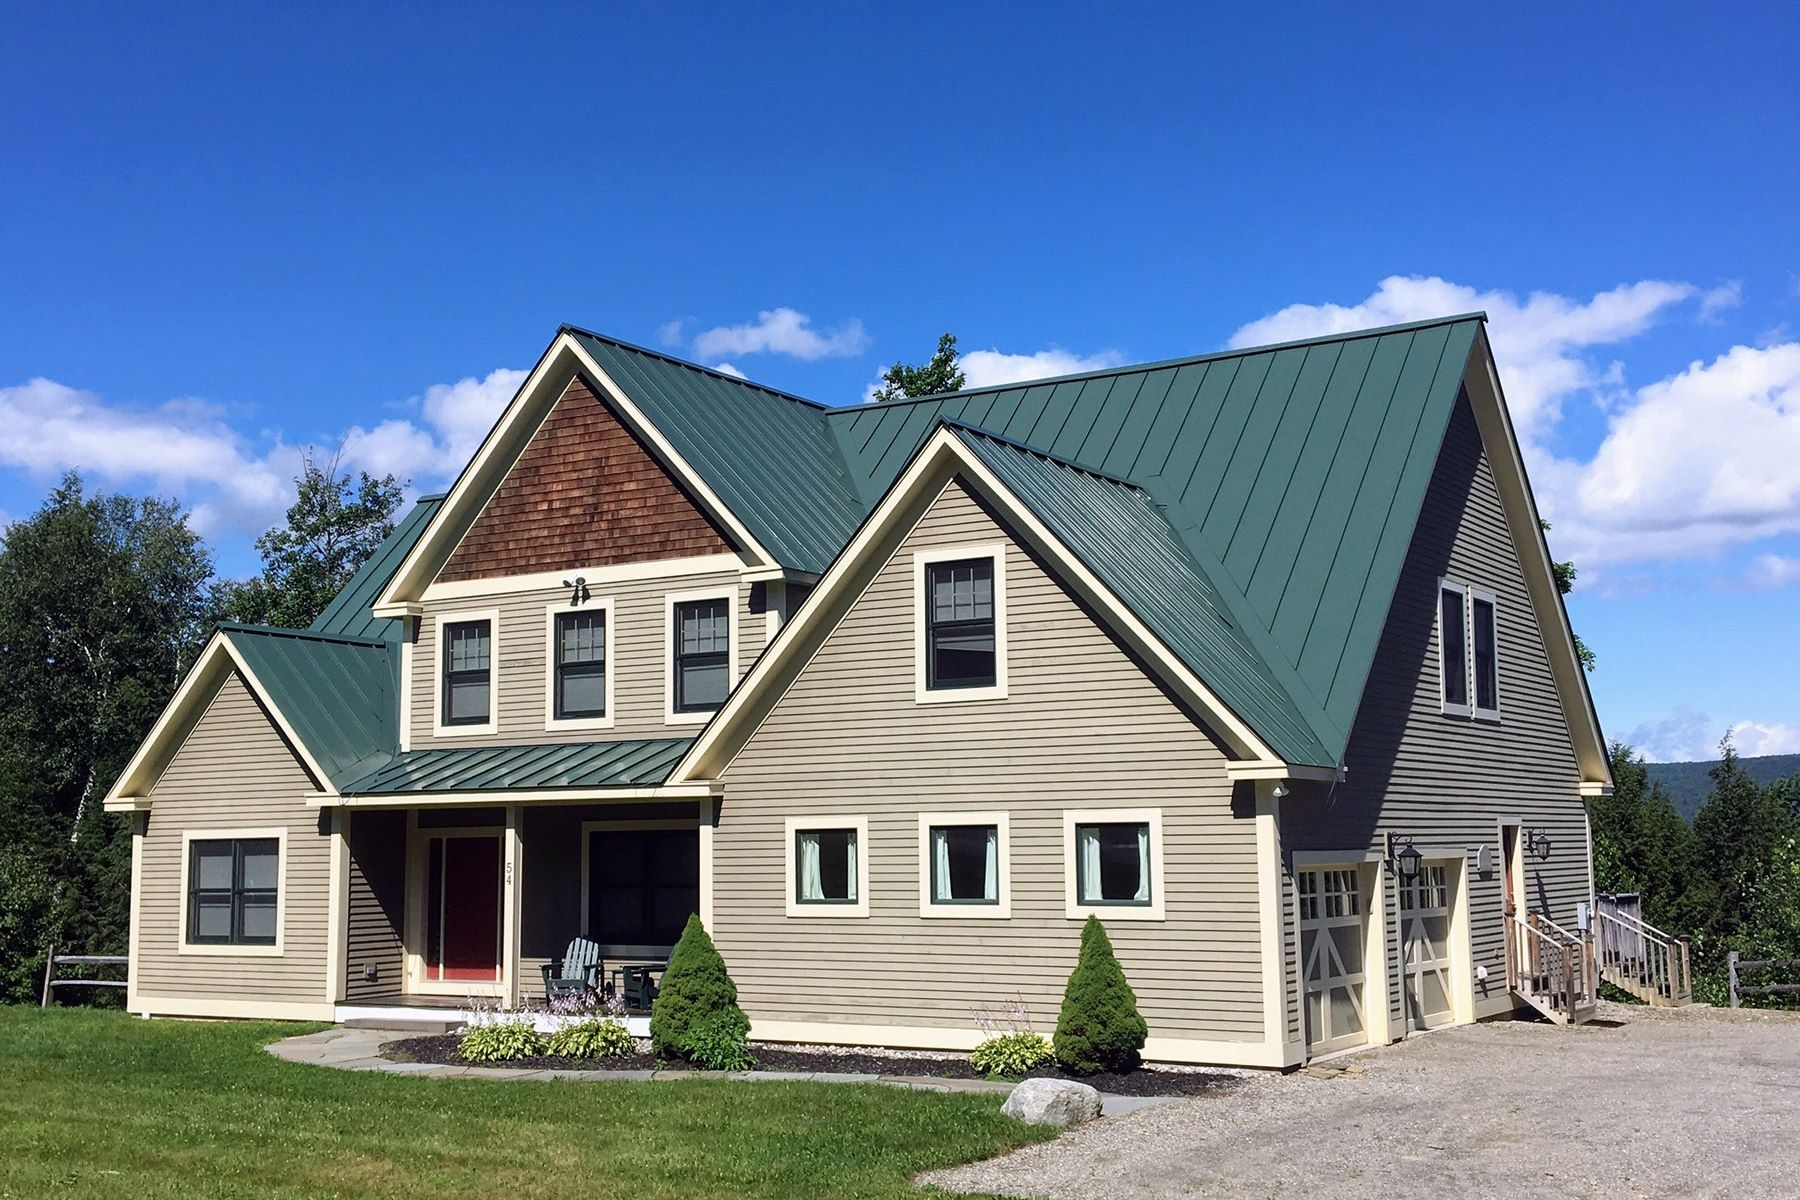 Single Family Home for Sale at 54 Garden Loop Rd, Winhall Winhall, Vermont, 05340 United States